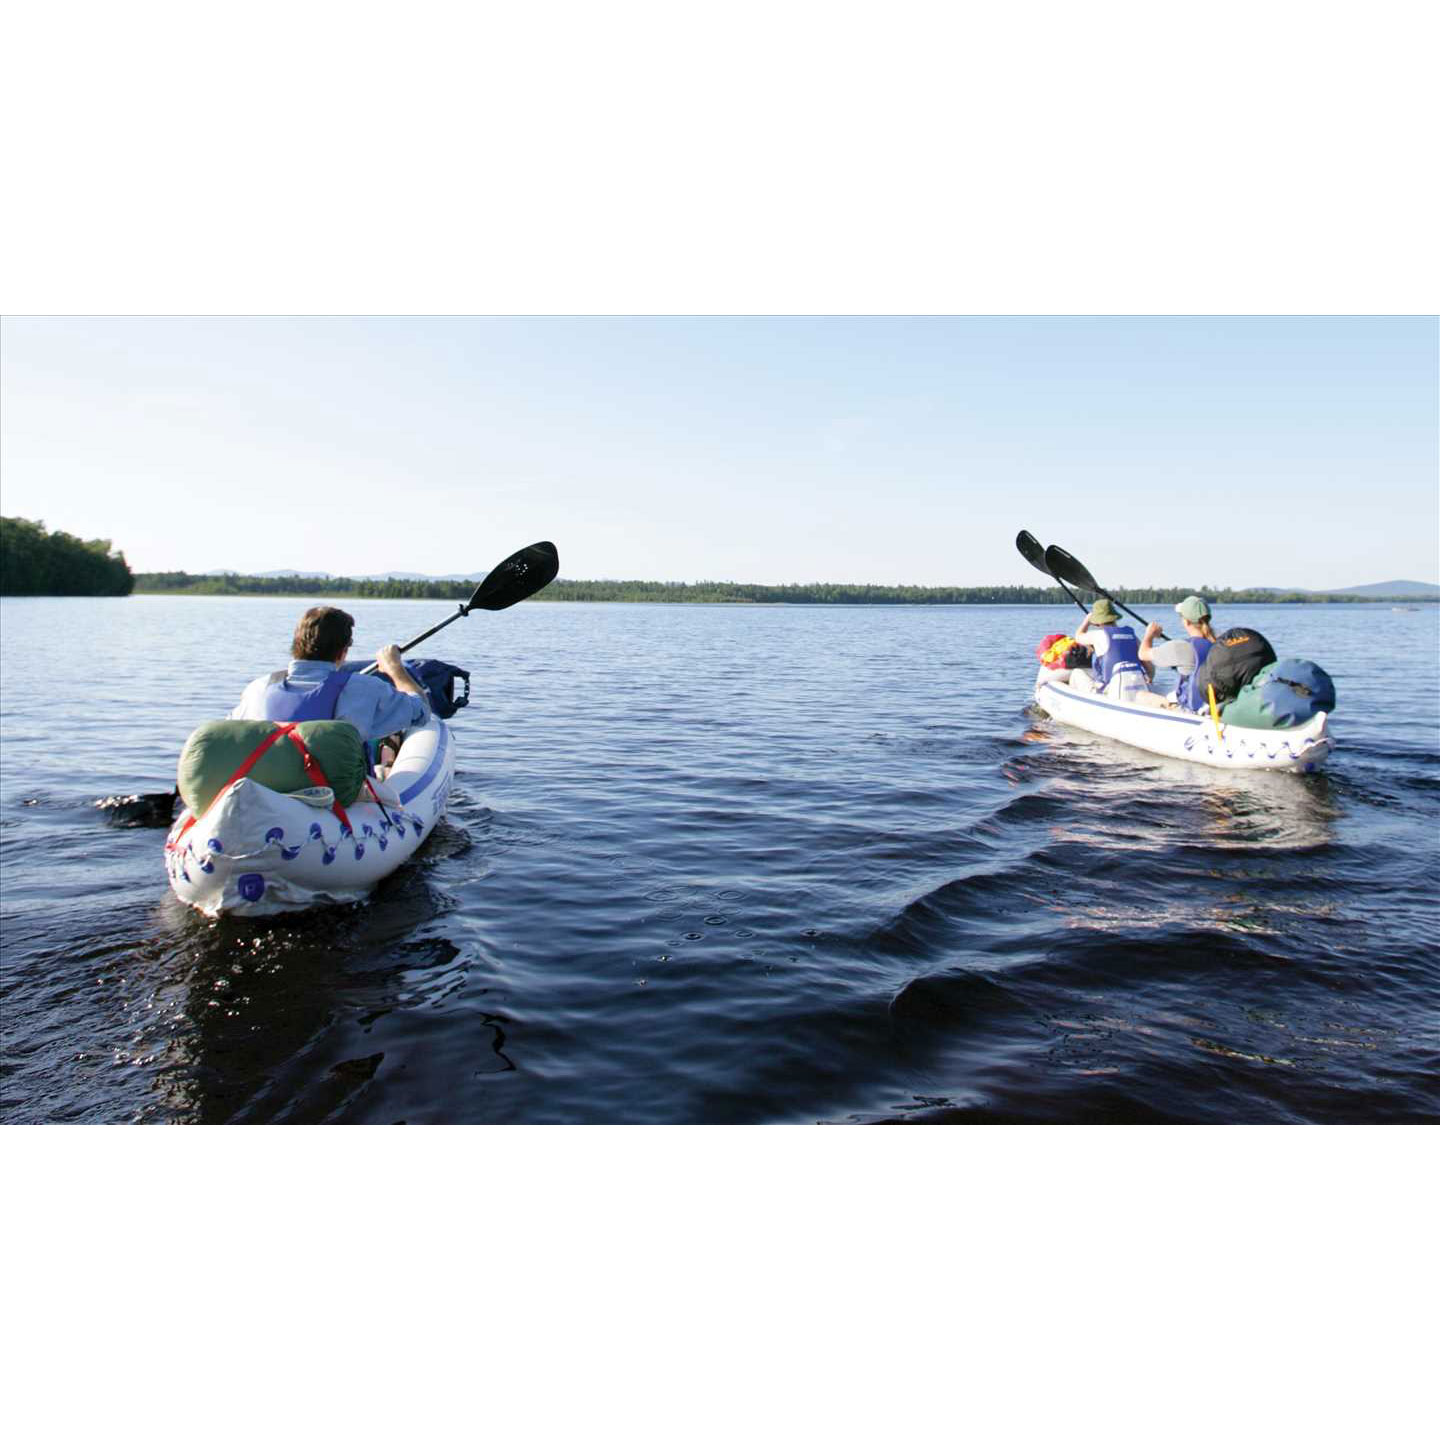 Sea eagle 370 pro 3 person blow up inflatable kayak for Blow up fishing boat